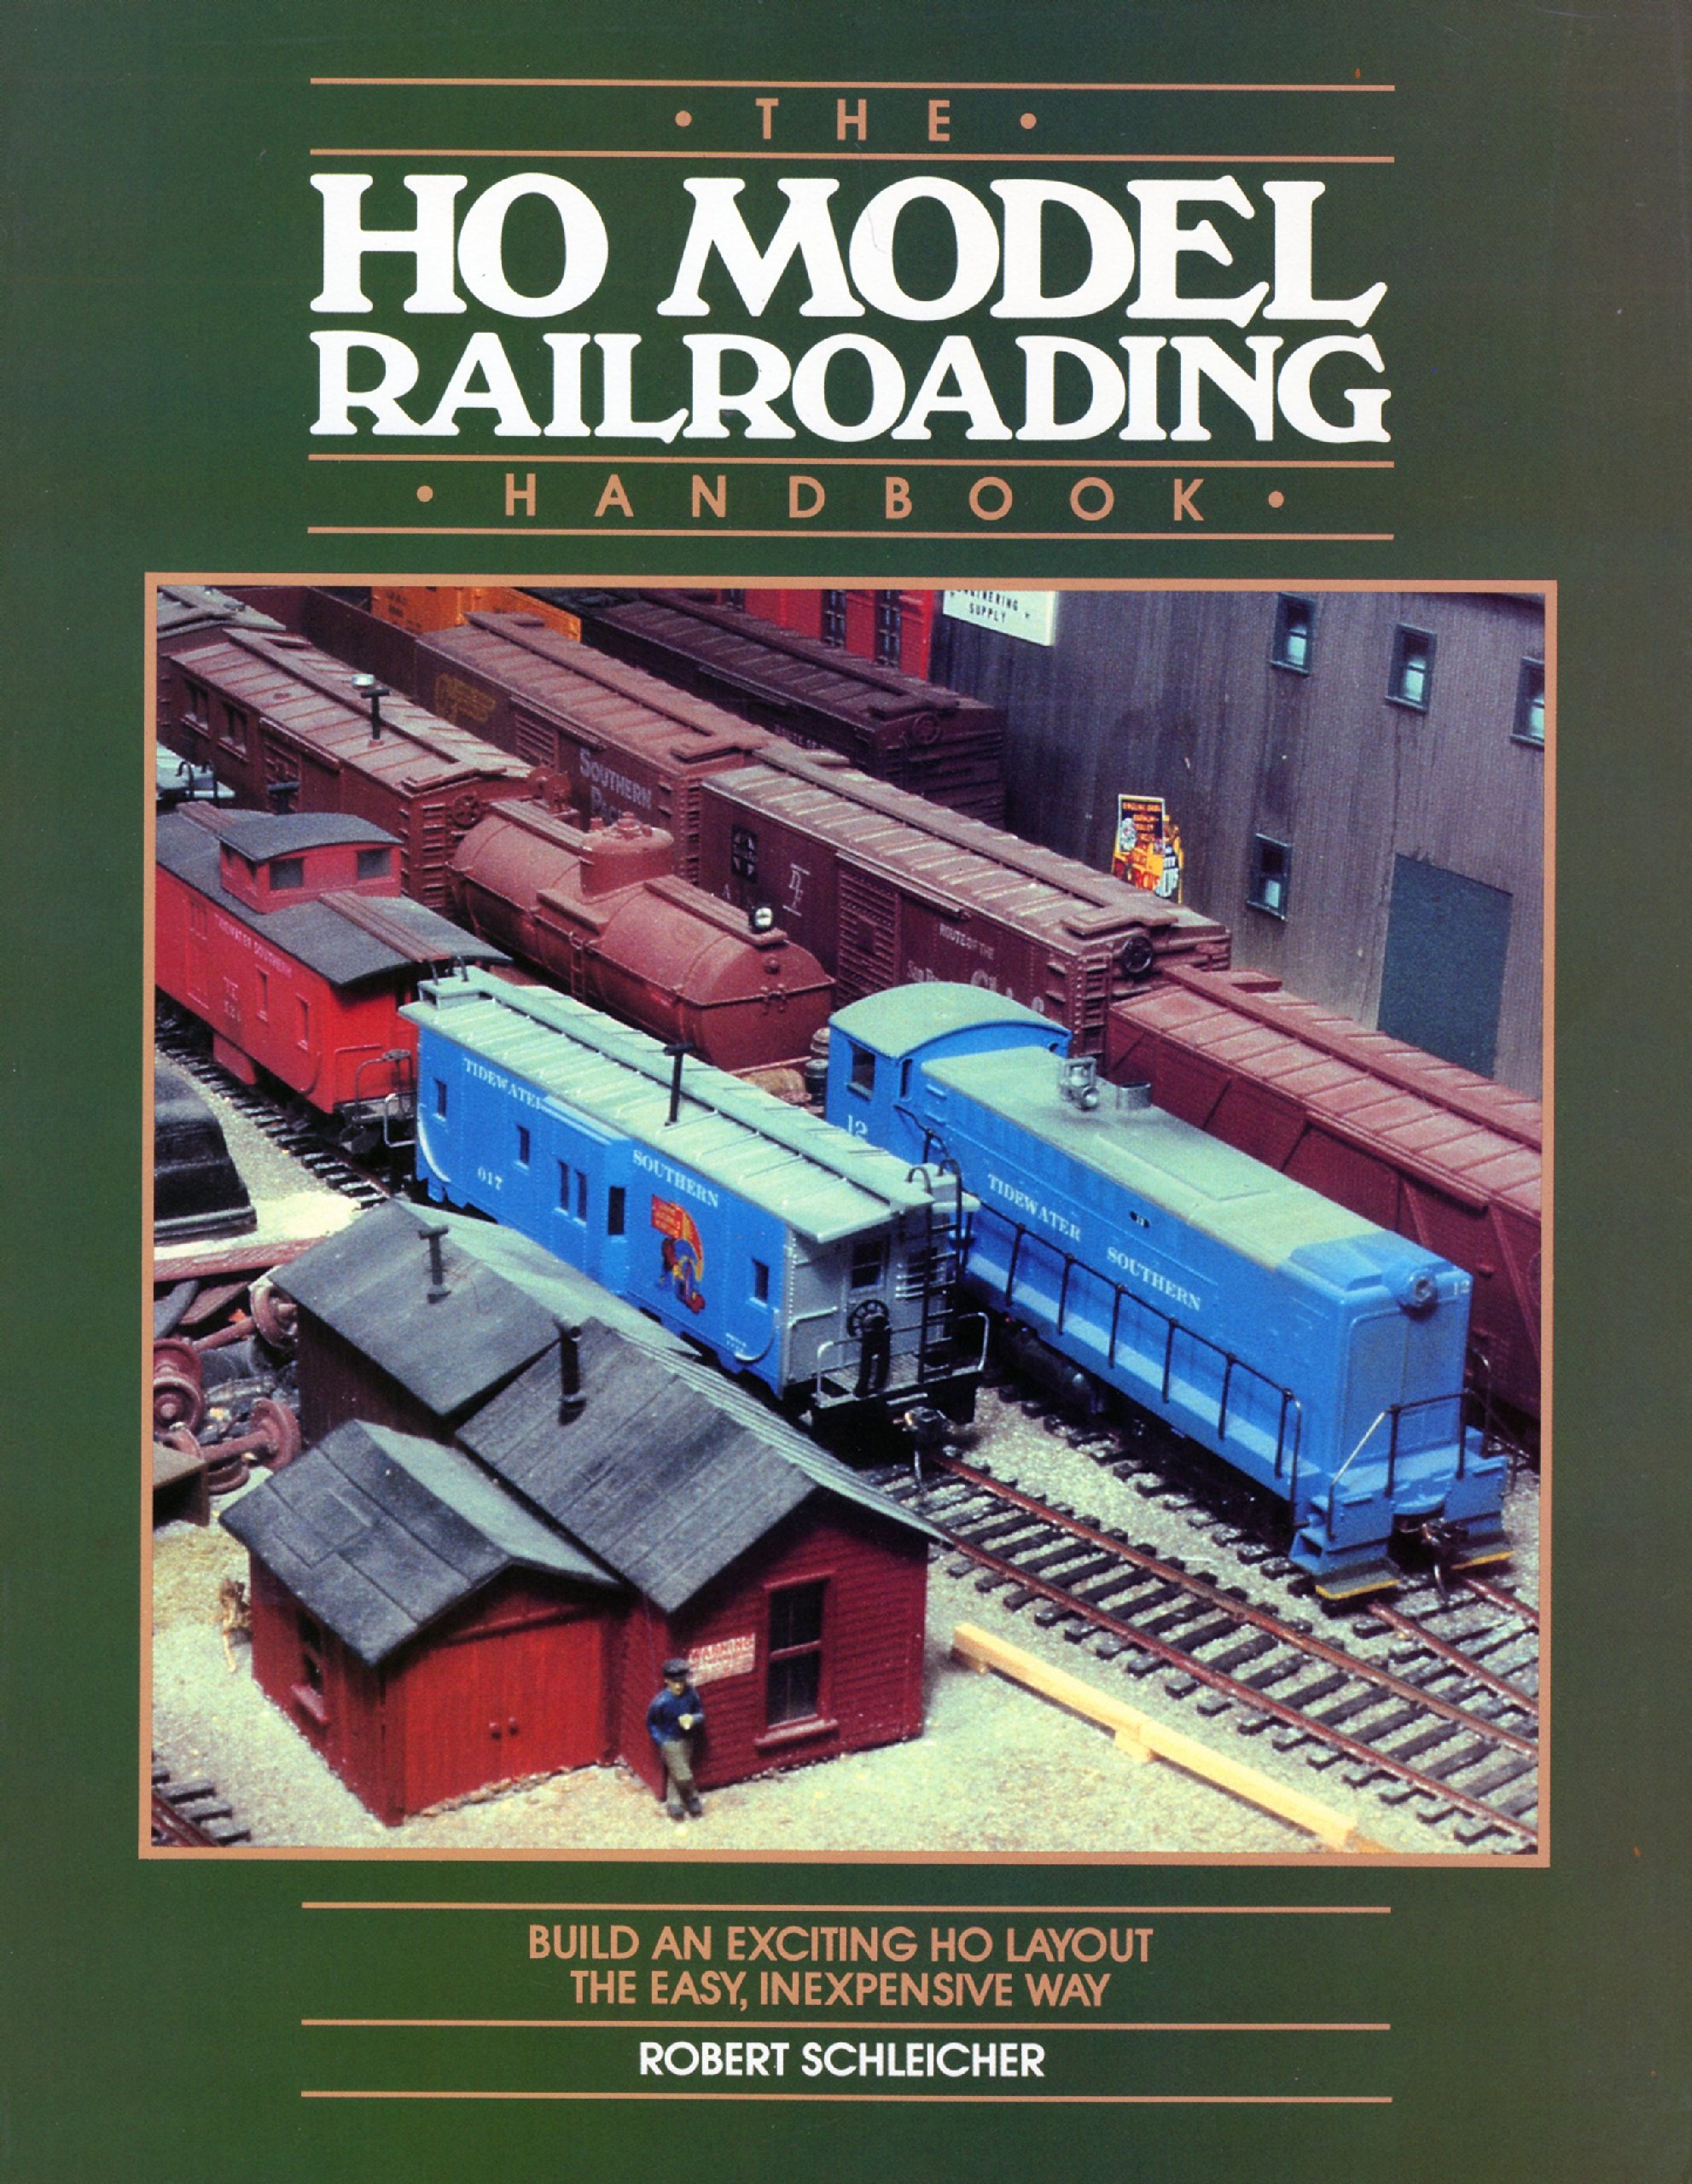 Ho Model Railroading Handbook Build An Exciting Layout The Easy Wiring Railroad Track Inexpensive Way Robert Schleicher 9780801973840 Books